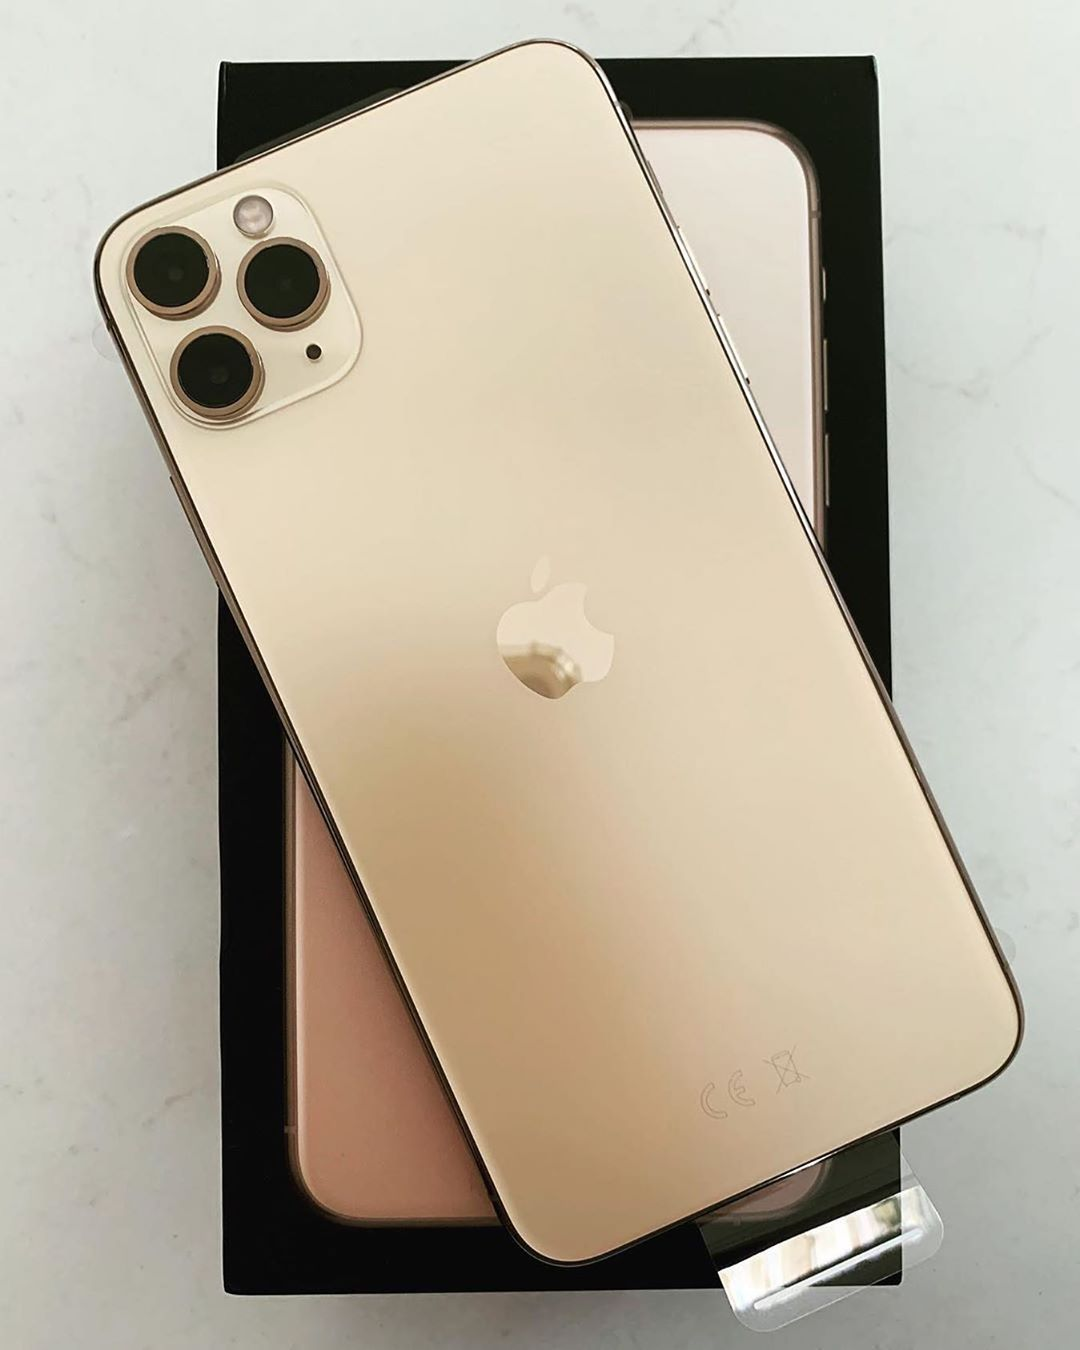 Apple Design Hub On Instagram Iphone 11 Pro Max Gold From